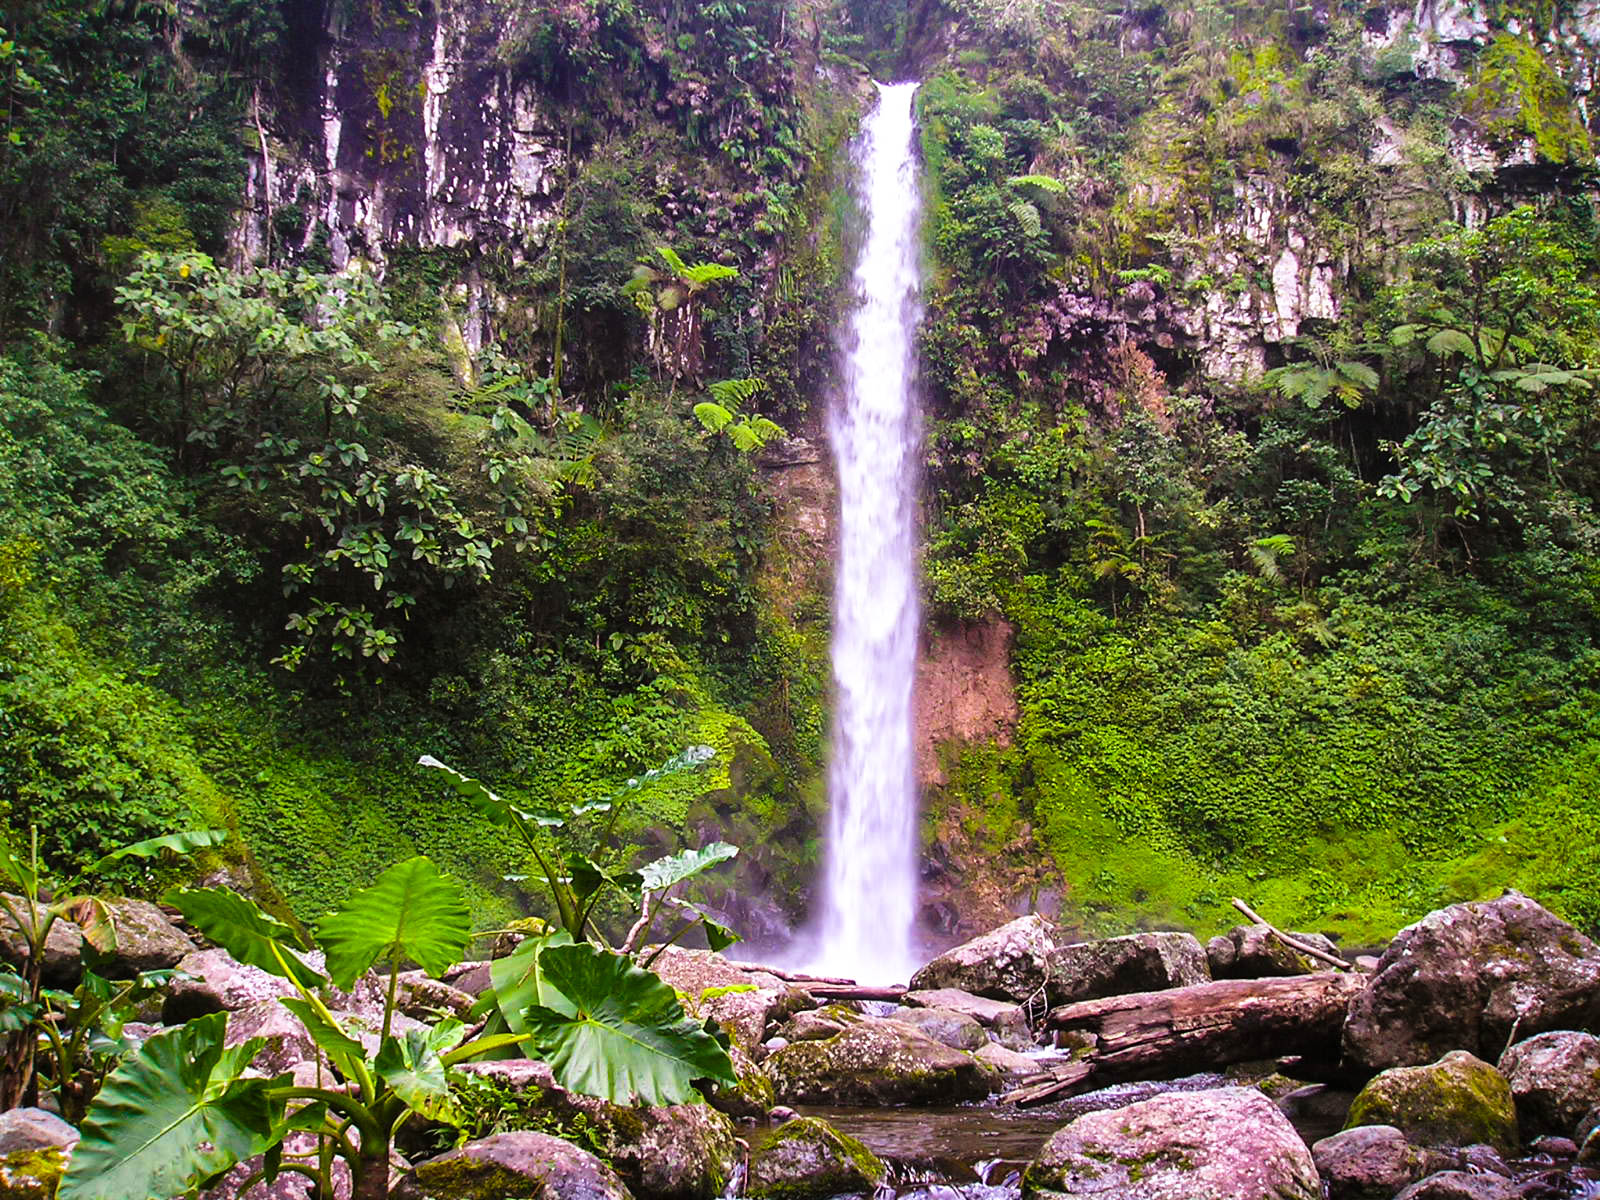 A waterfall cascading from a cliff overhung with vegetation